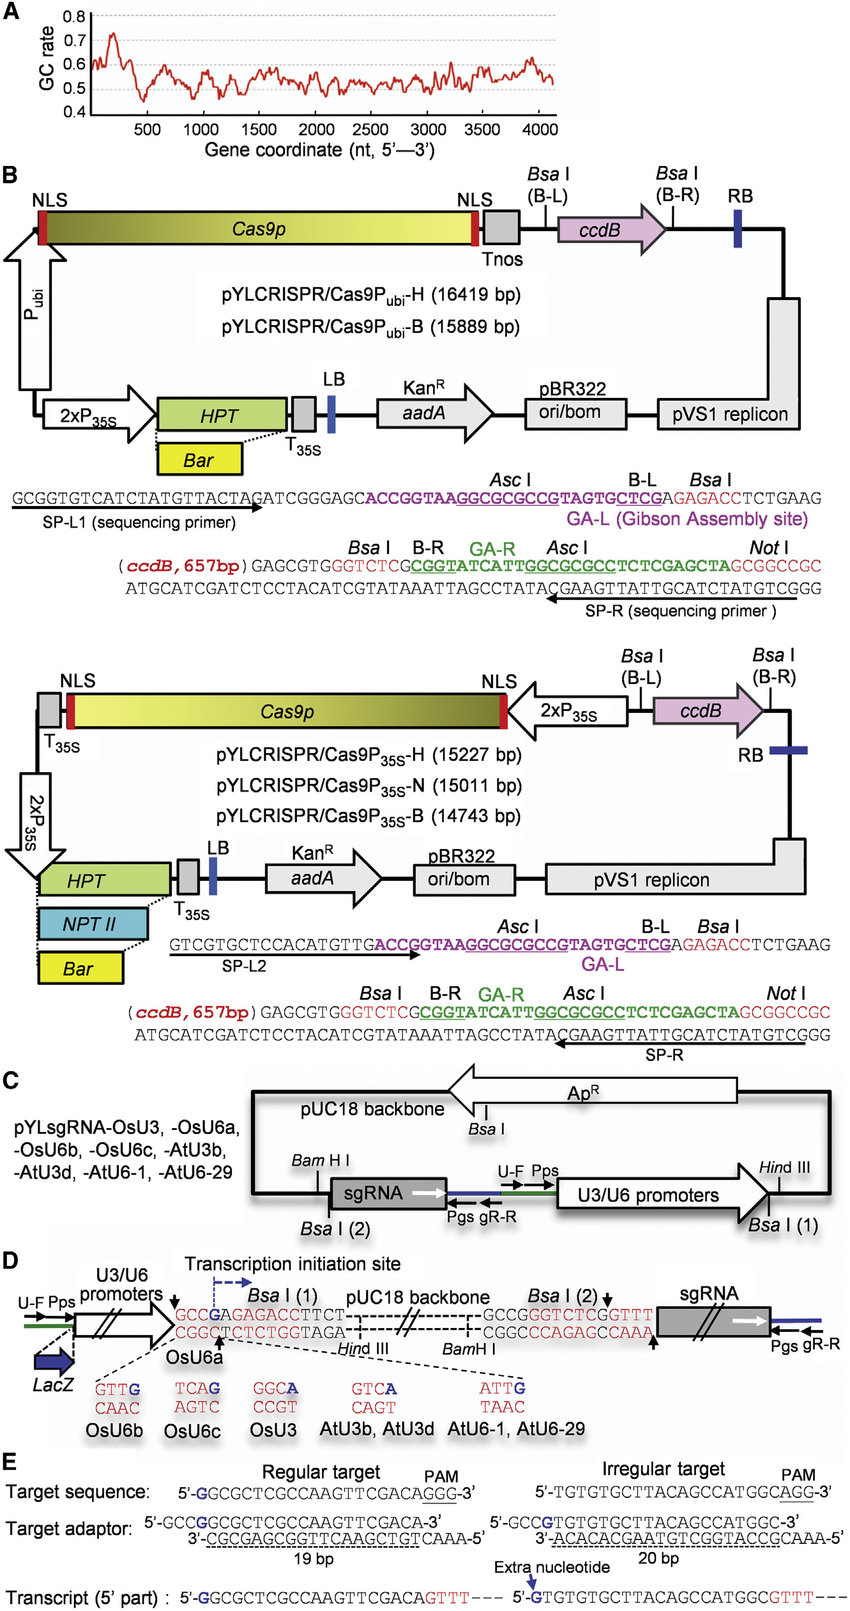 medium resolution of a crispr cas9 system for monocot and dicot plants